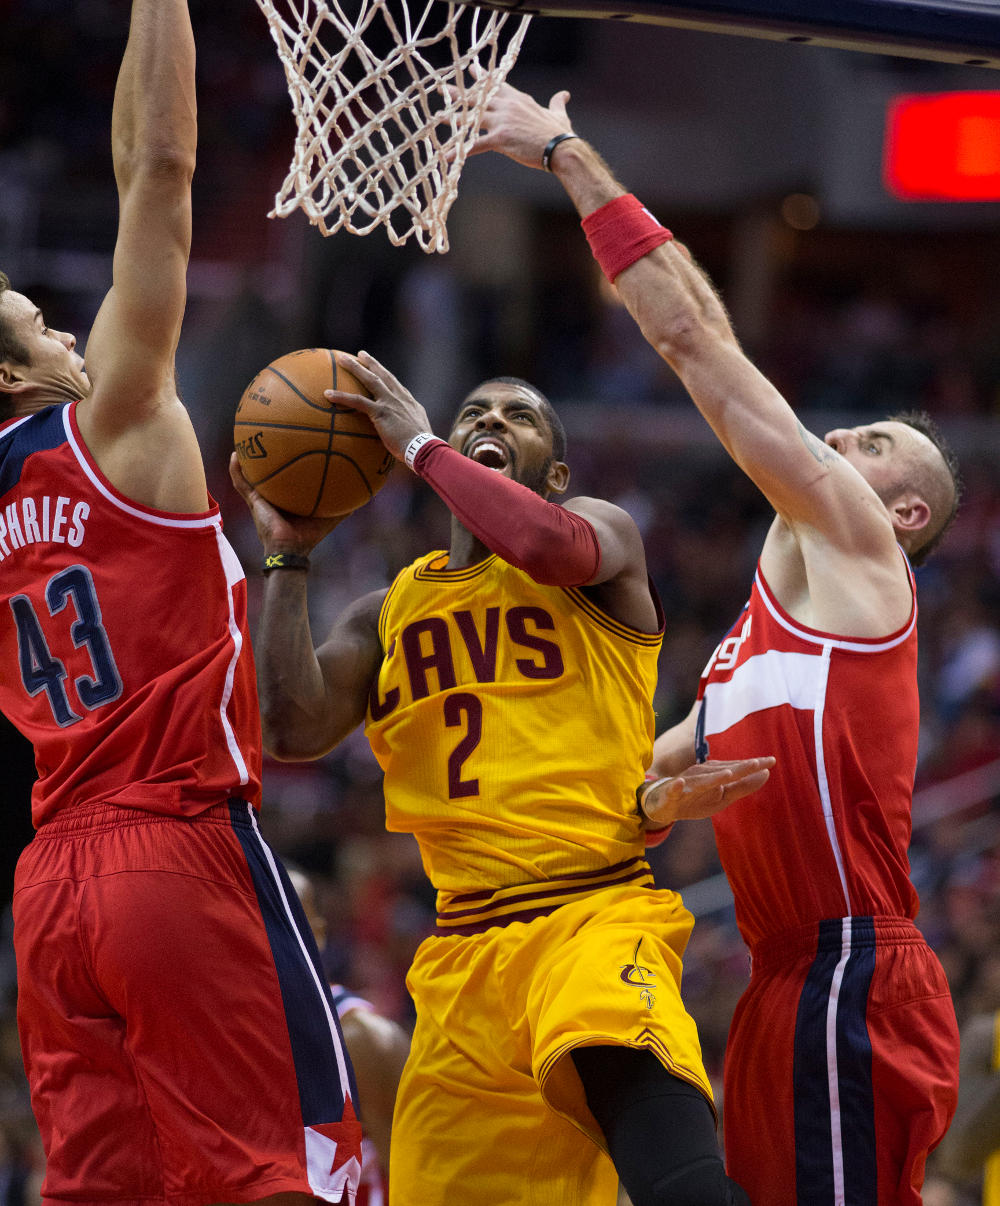 Kyrie Irving forces a layup for the Cavs